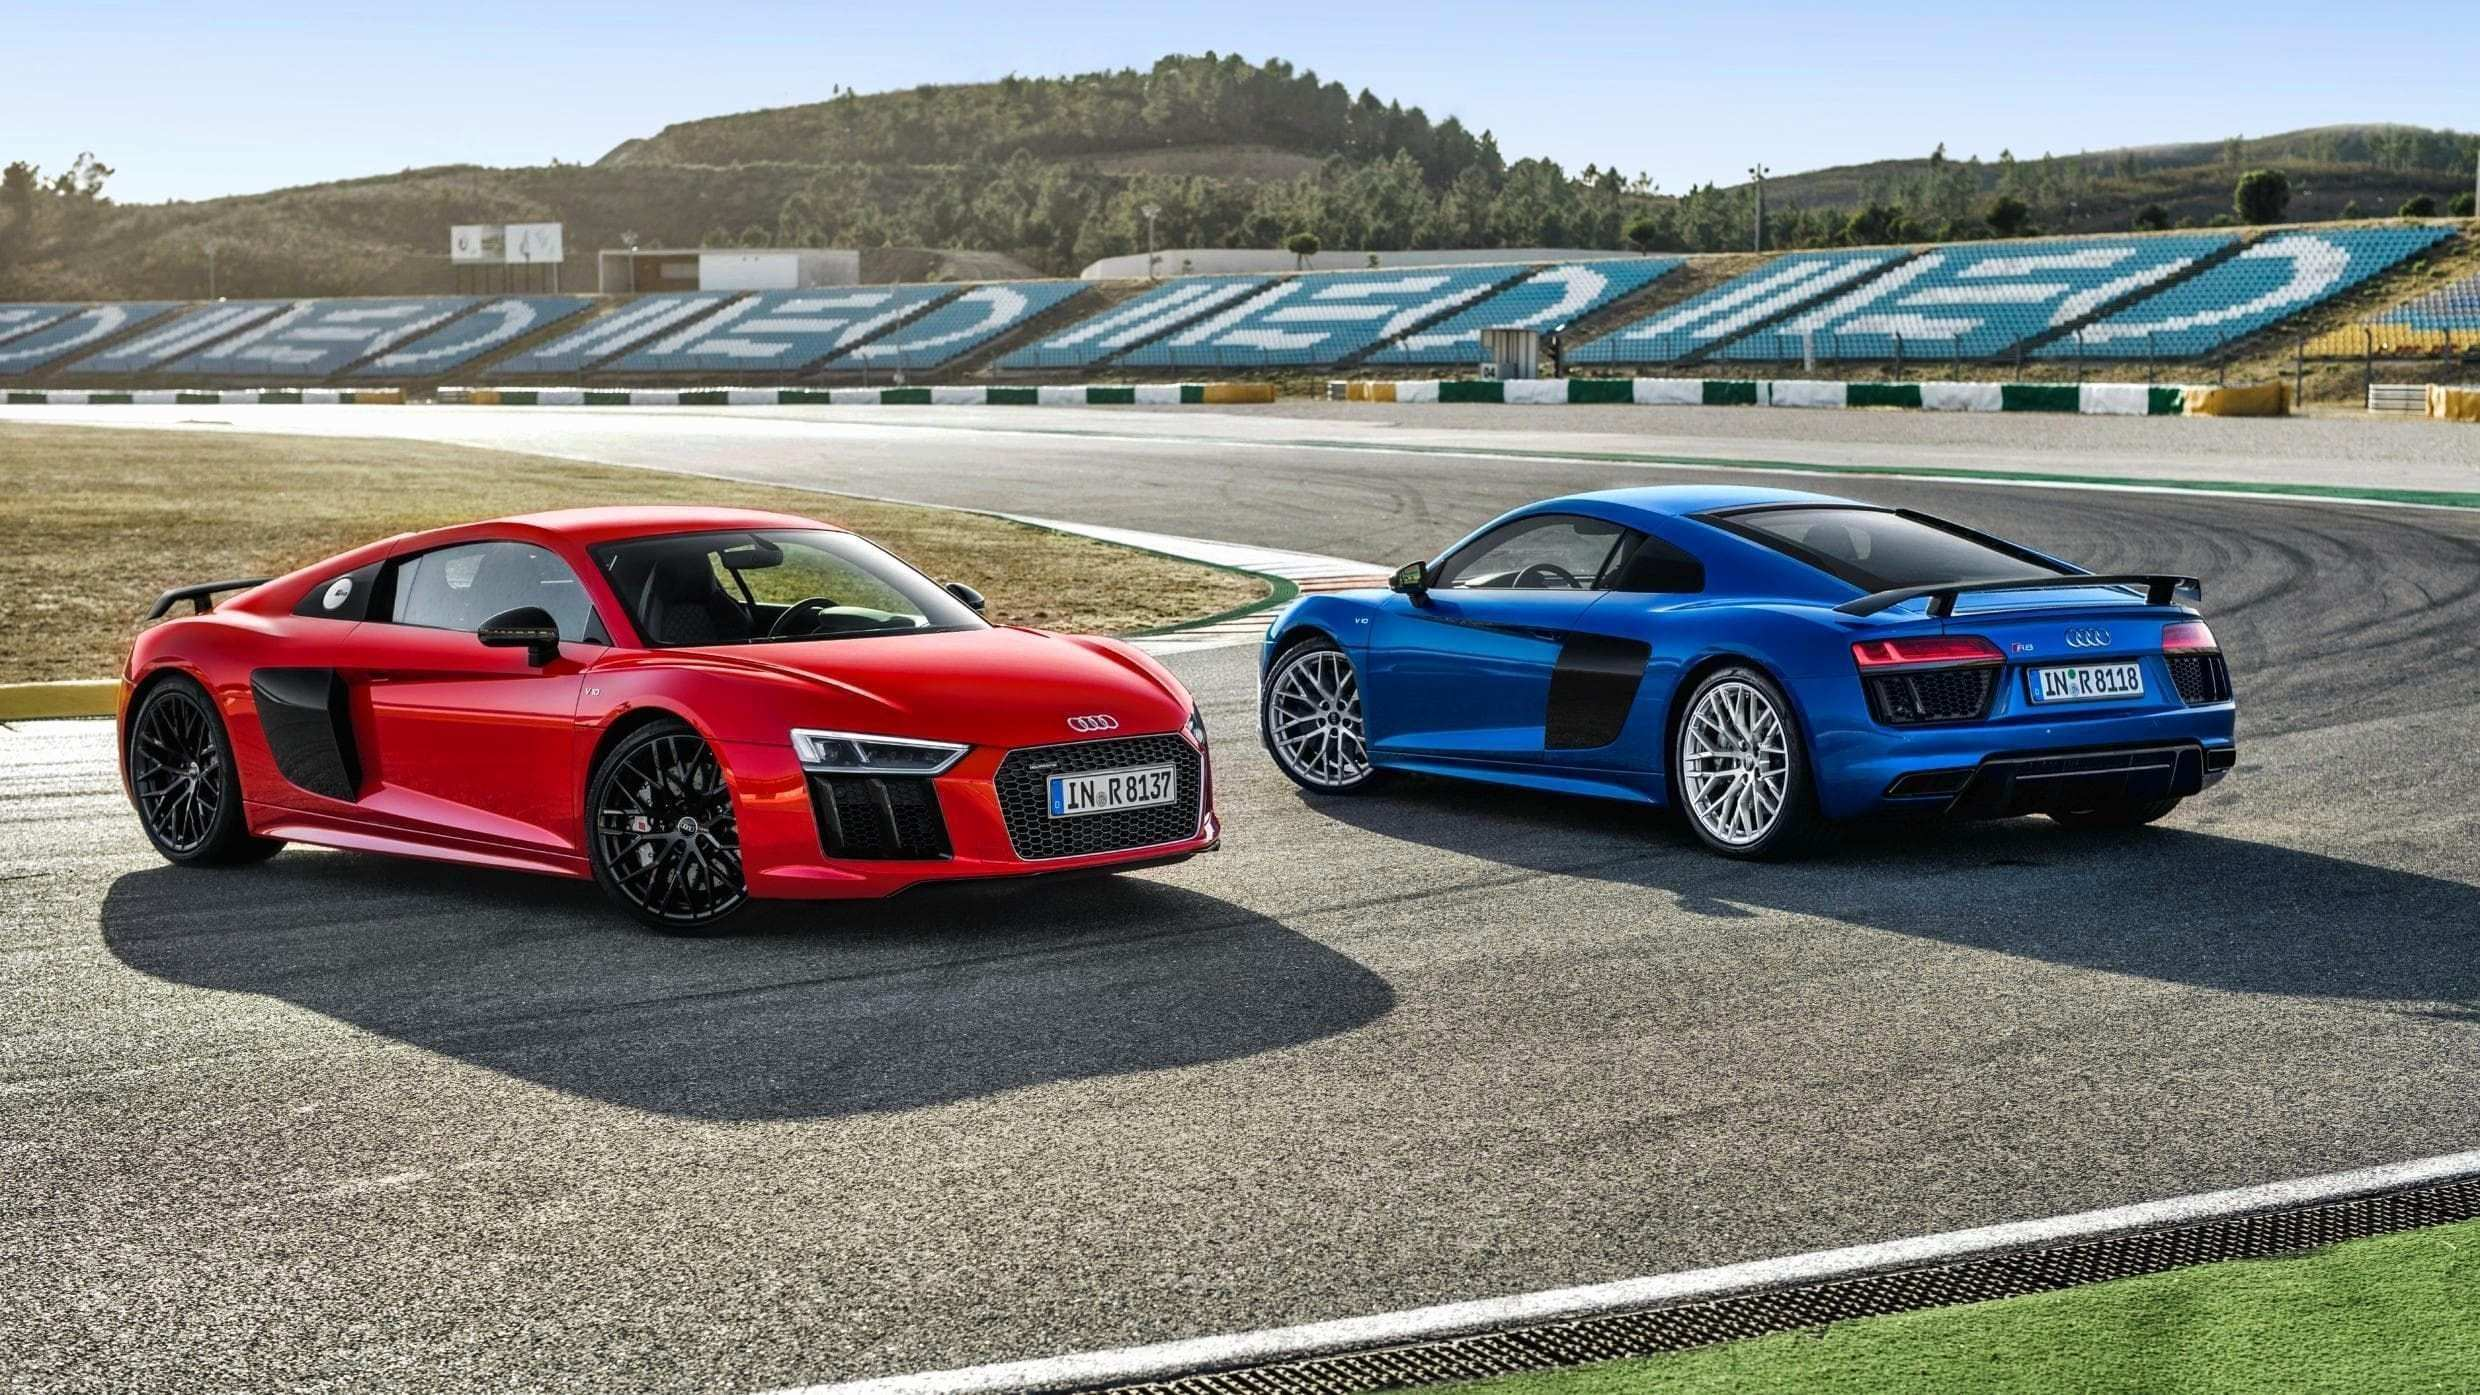 84 The Best 2019 Audi R8 LMXs Pricing